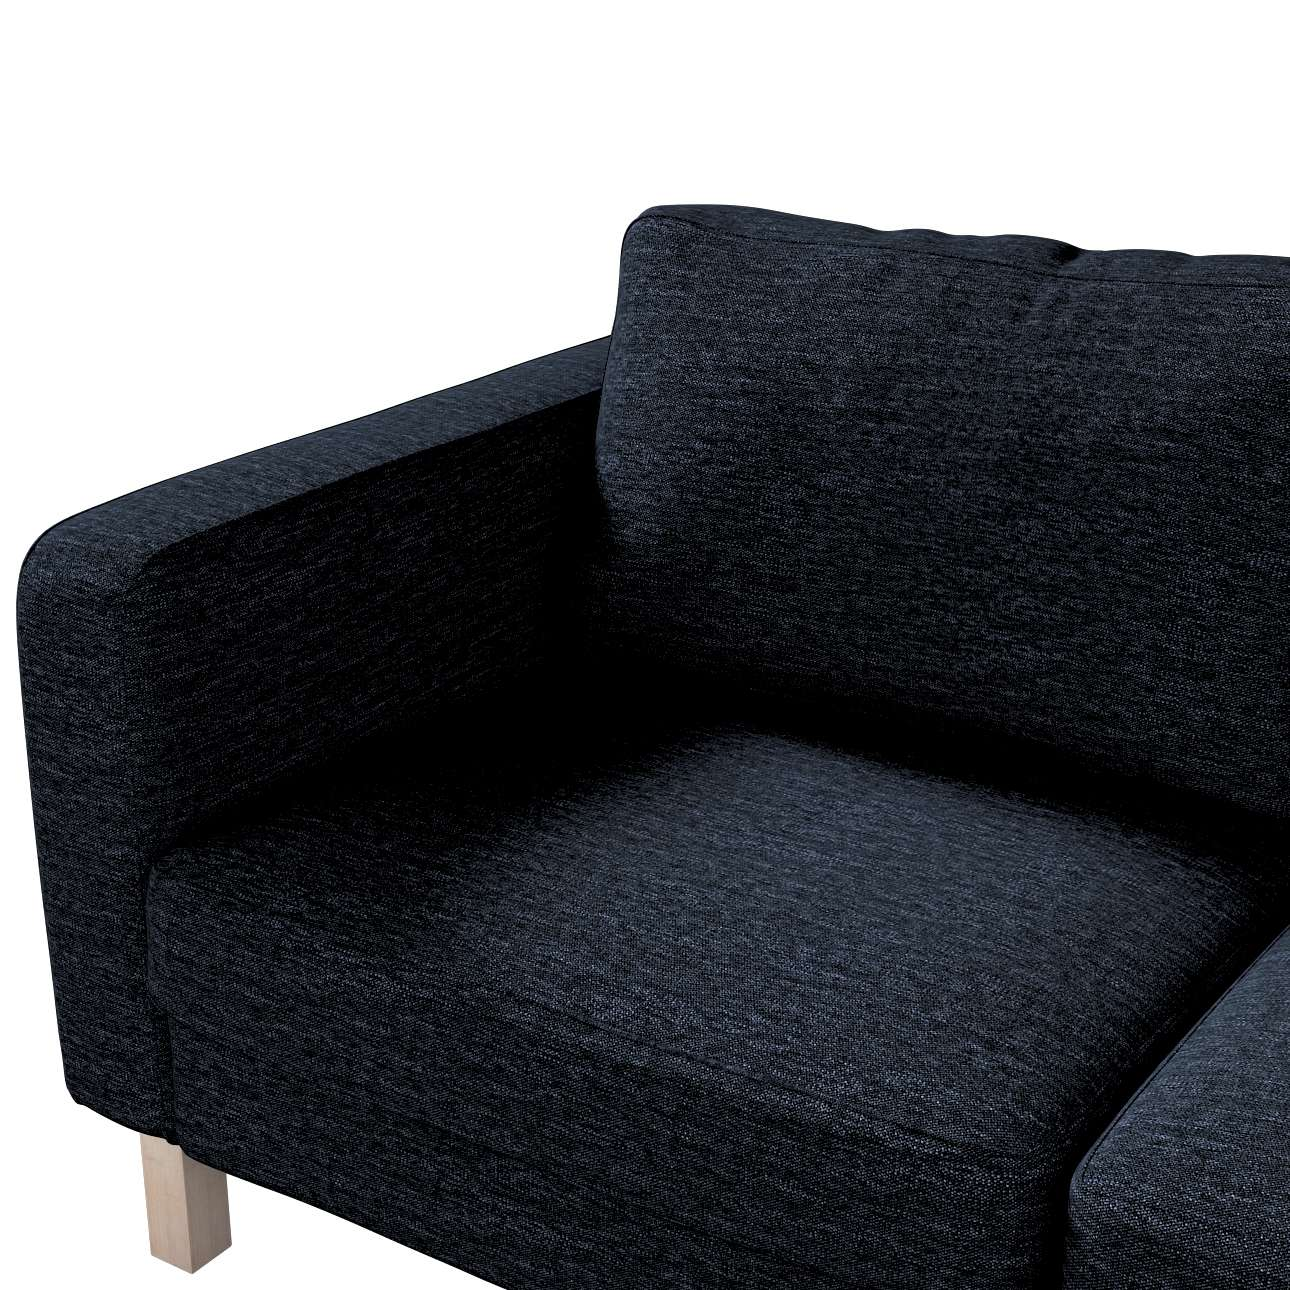 Karlstad 2-seater sofa cover in collection Vintage, fabric: 702-38